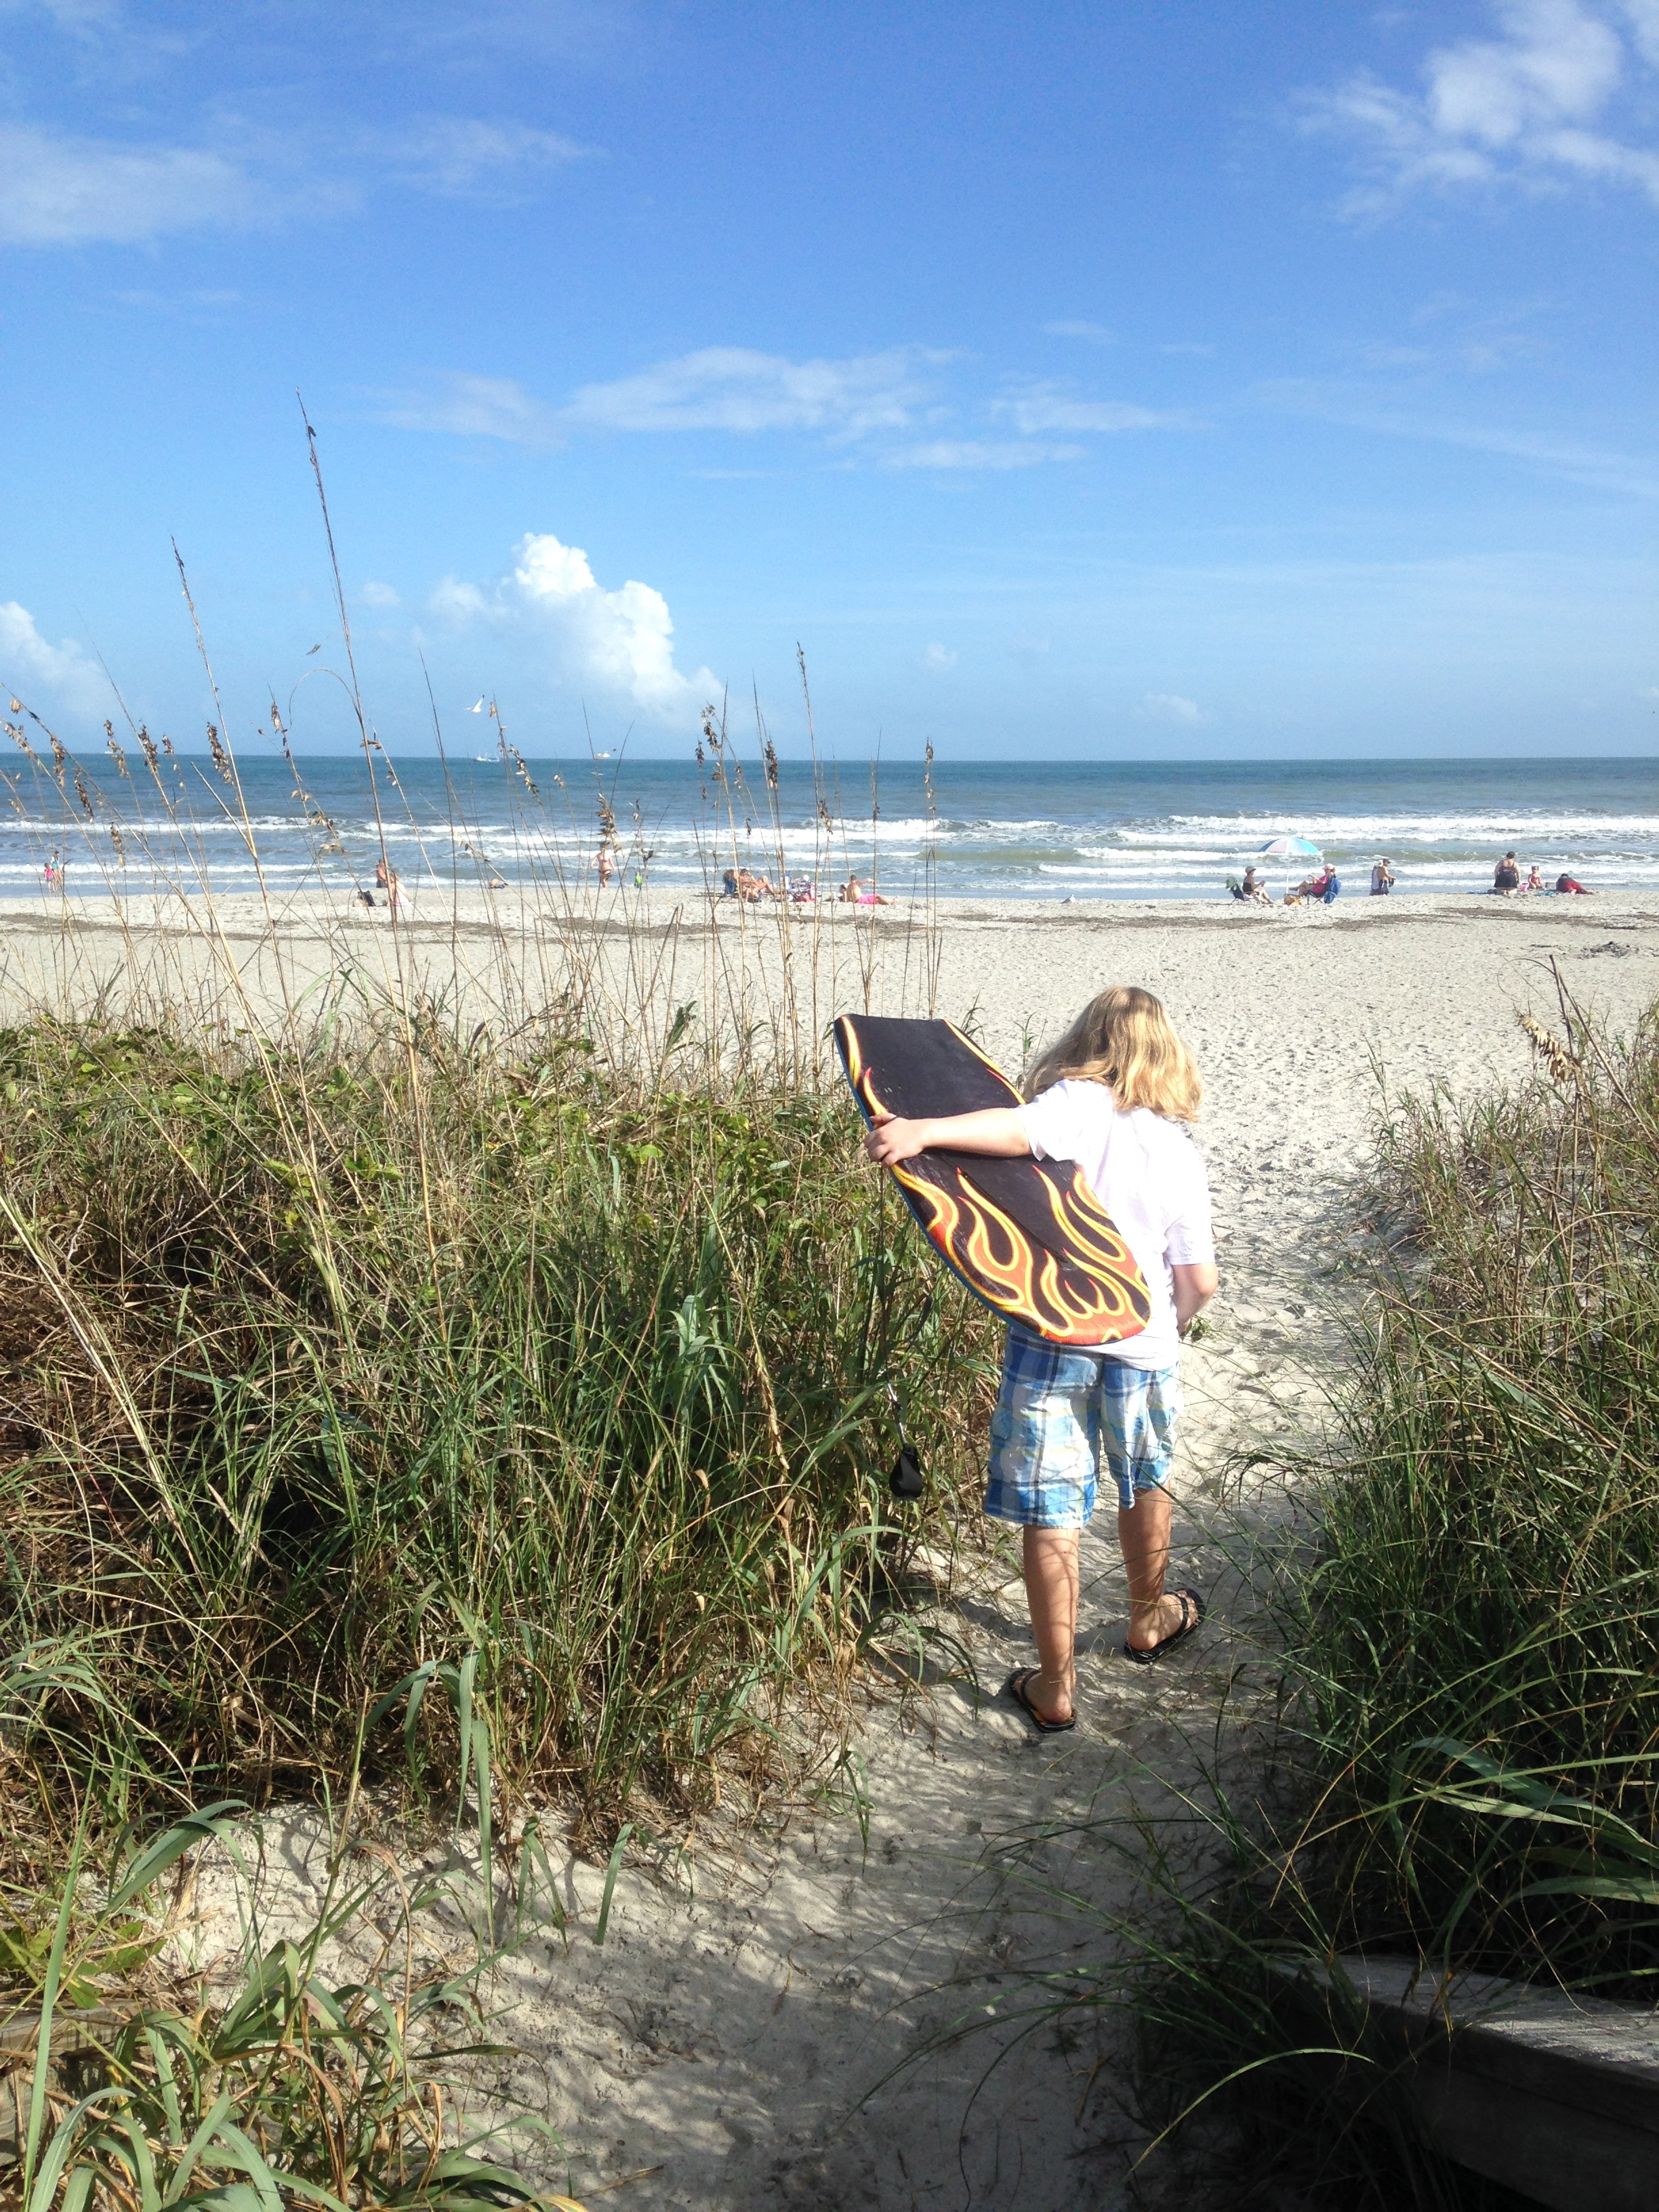 Heading Out For Some Light Boogie Boarding At Osceola Lane In Cocoa Beach